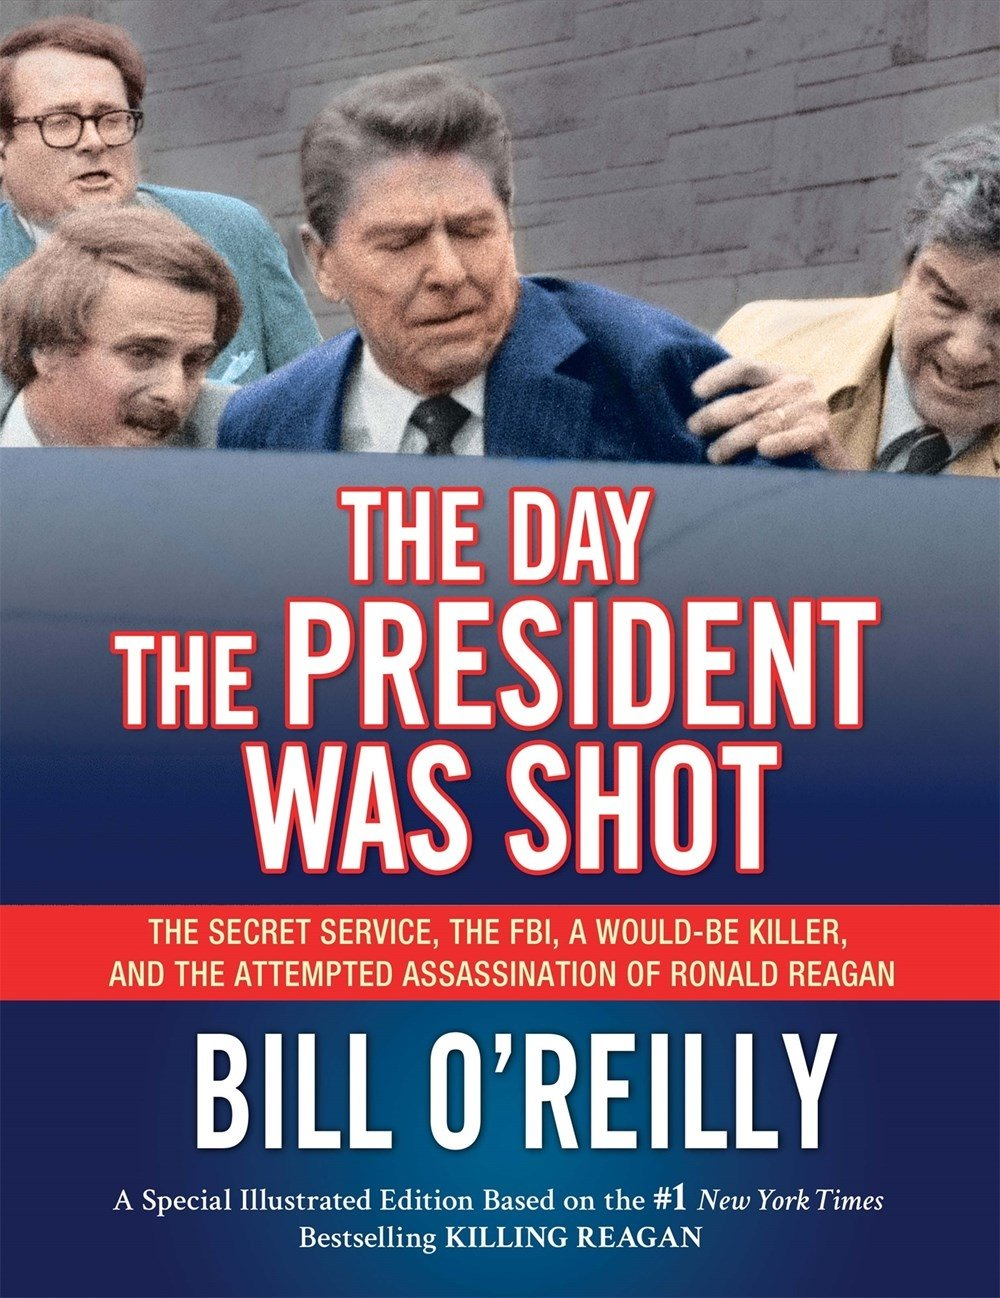 Amazon.com: The Day the President Was Shot: The Secret Service ...